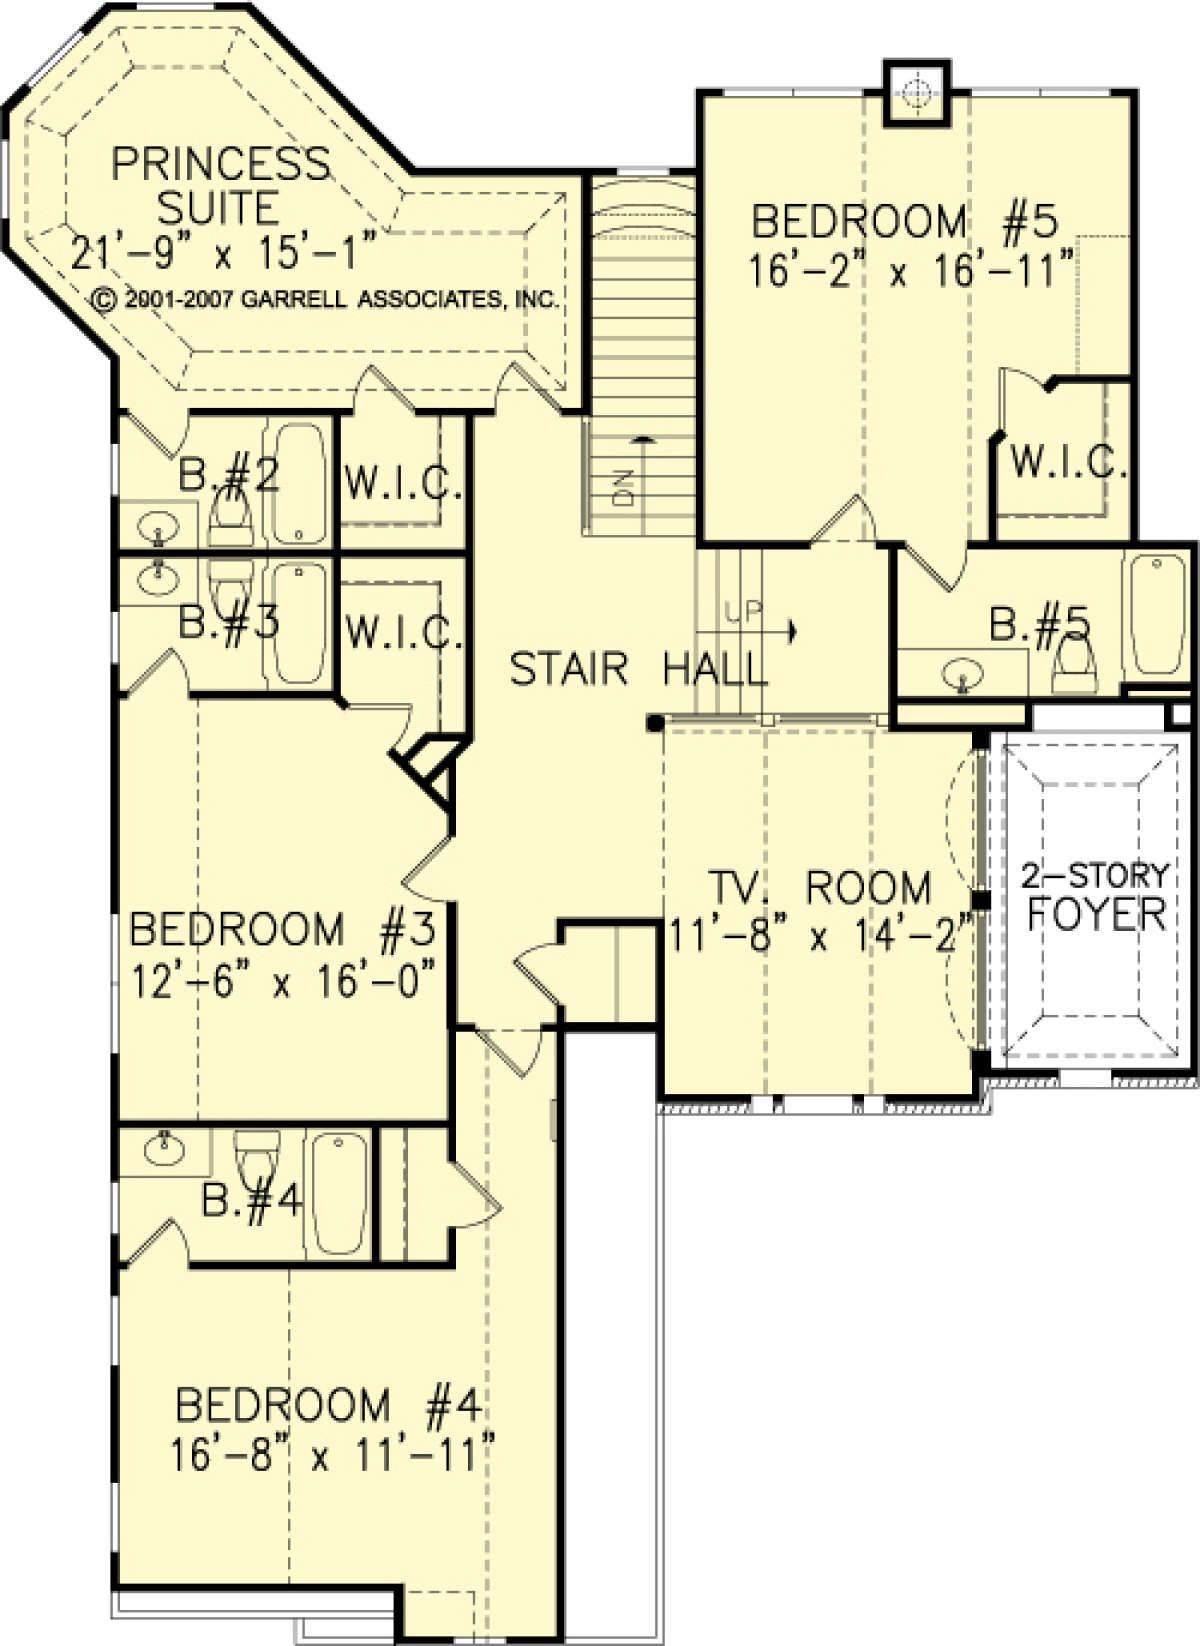 House Plan 699-00028 - Luxury Plan: 4,354 Square Feet, 5 Bedrooms, on swimming pool house plans, gourmet kitchen house plans, sun room house plans, master bath house plans, master bedroom house plans, fancy bird house plans, bonus room house plans,